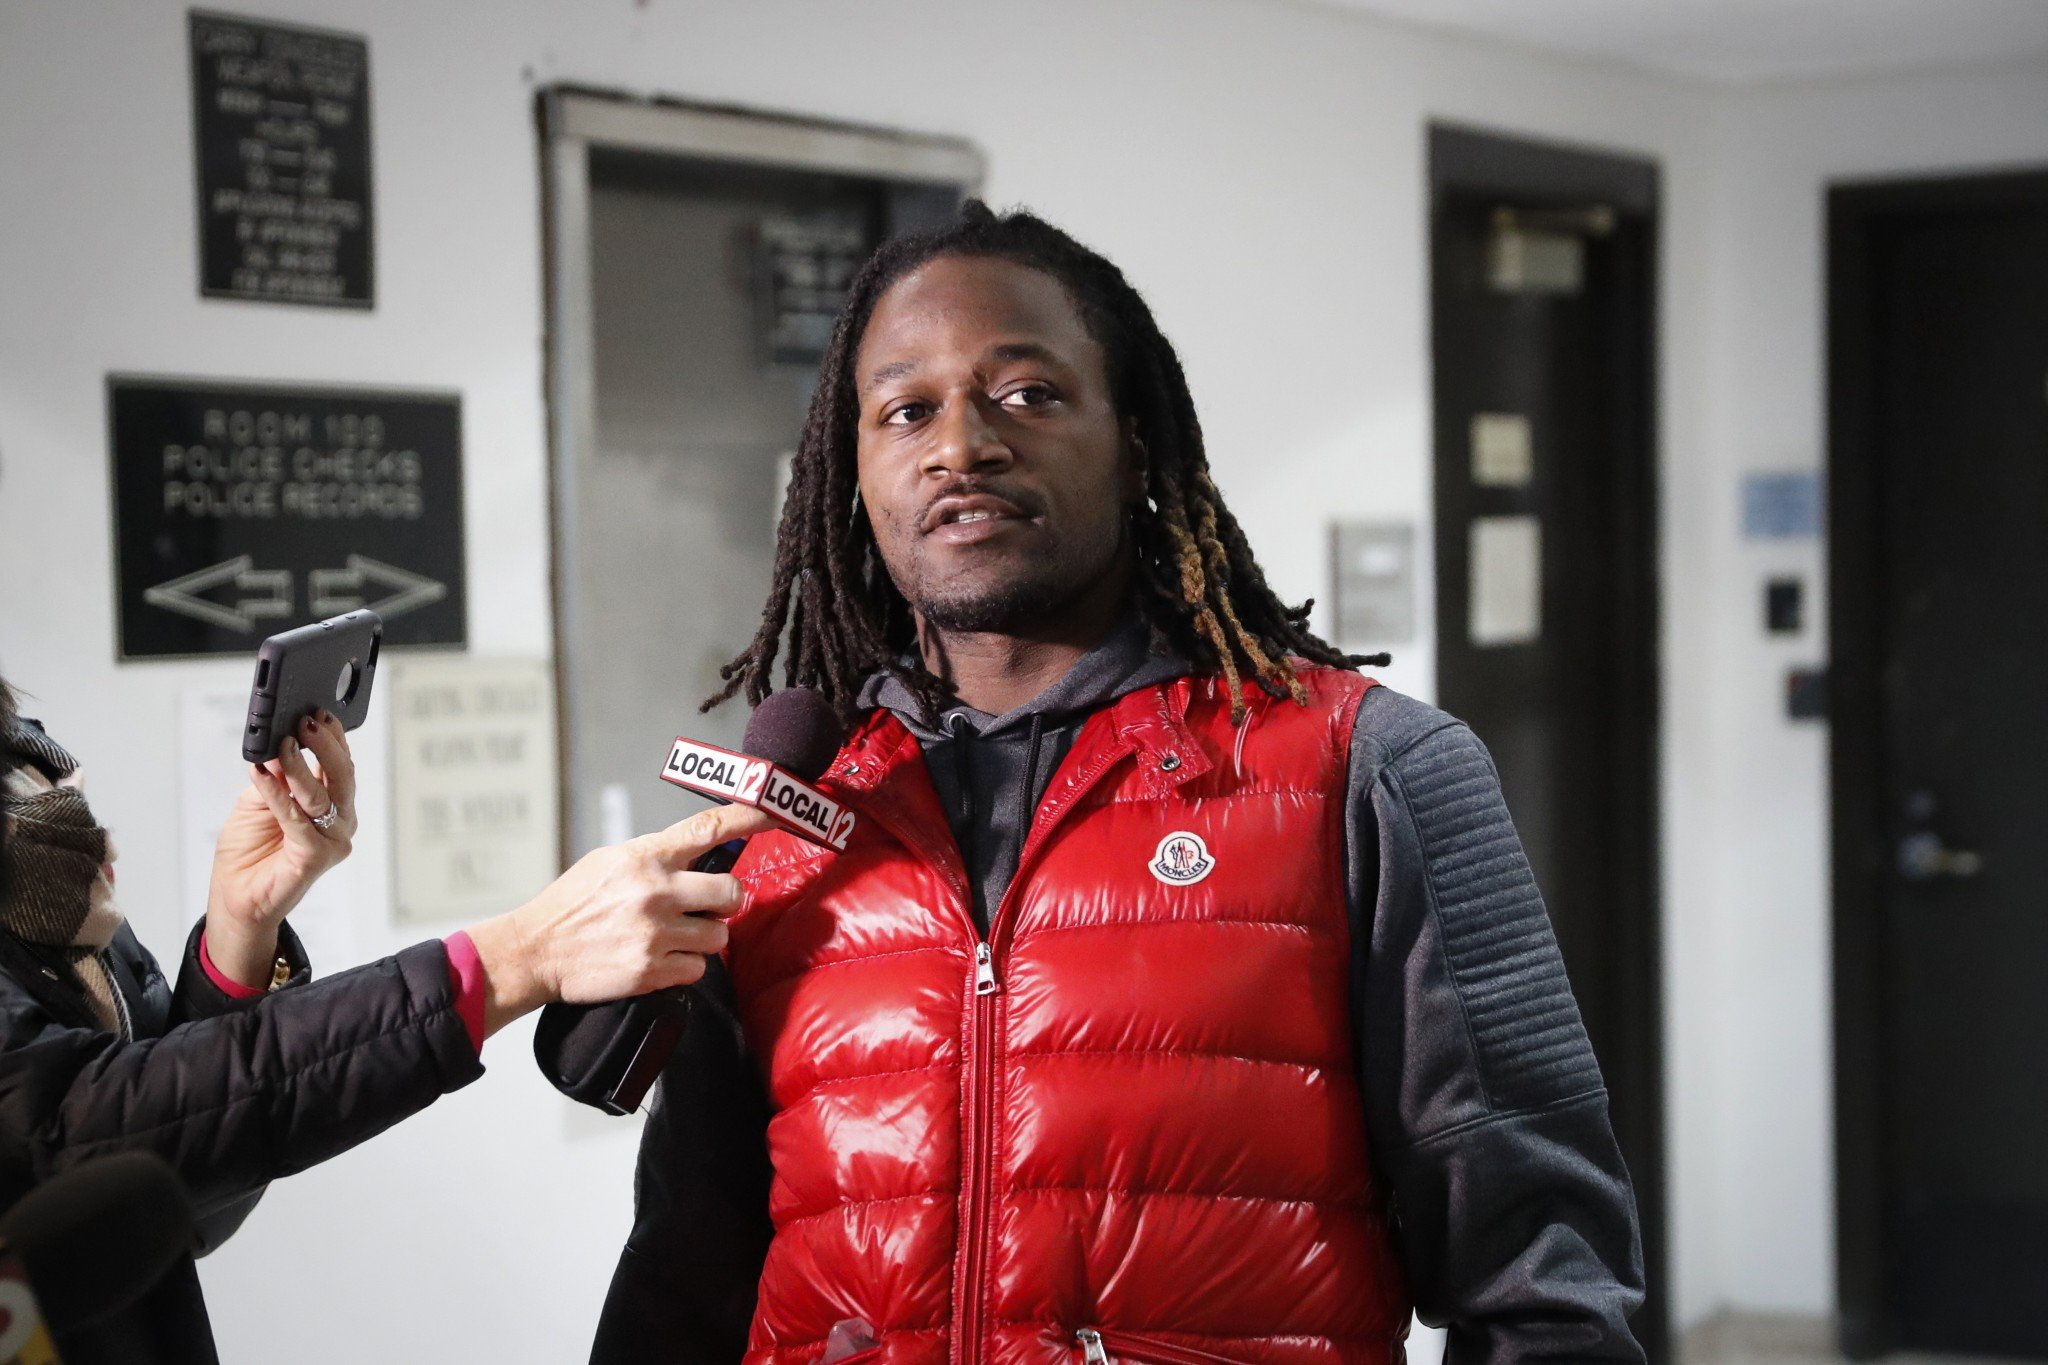 Adam Jones talks to reporters after being released from jail earlier this month. (AP)